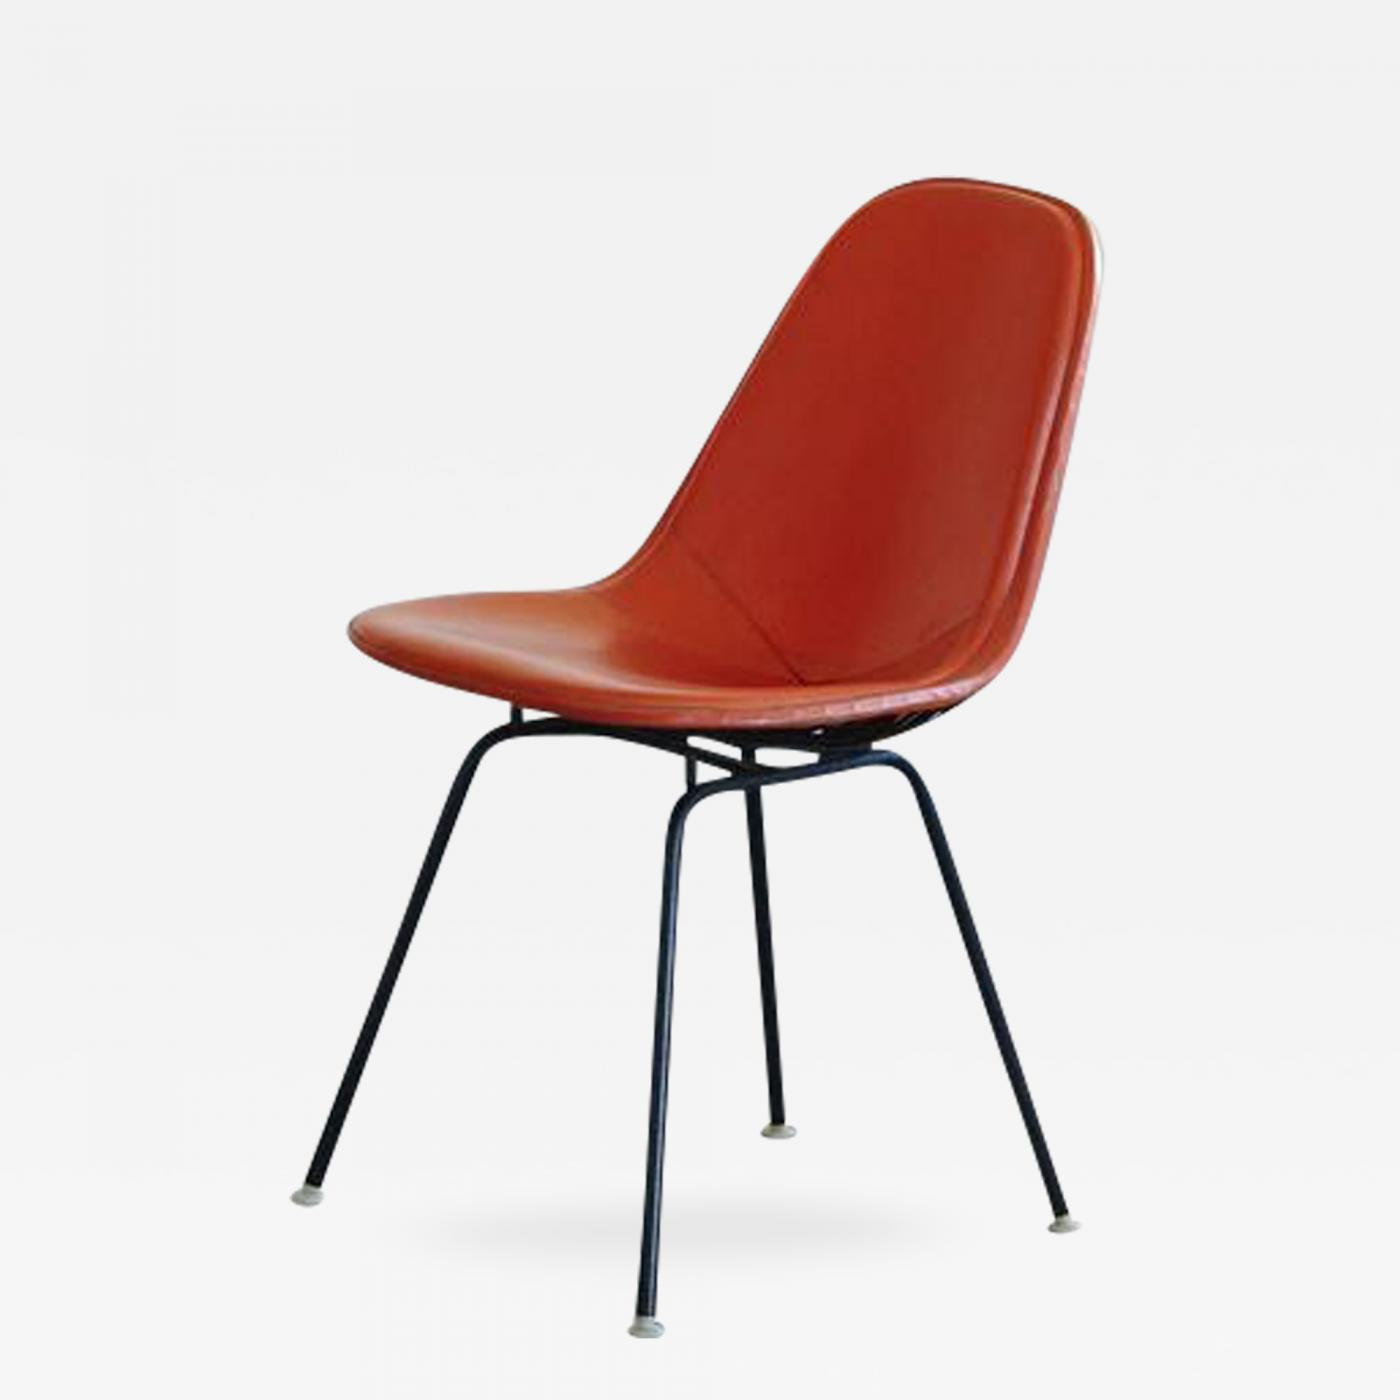 Charles & Ray Eames Original Eames DKX 1 Side Chair in Orange